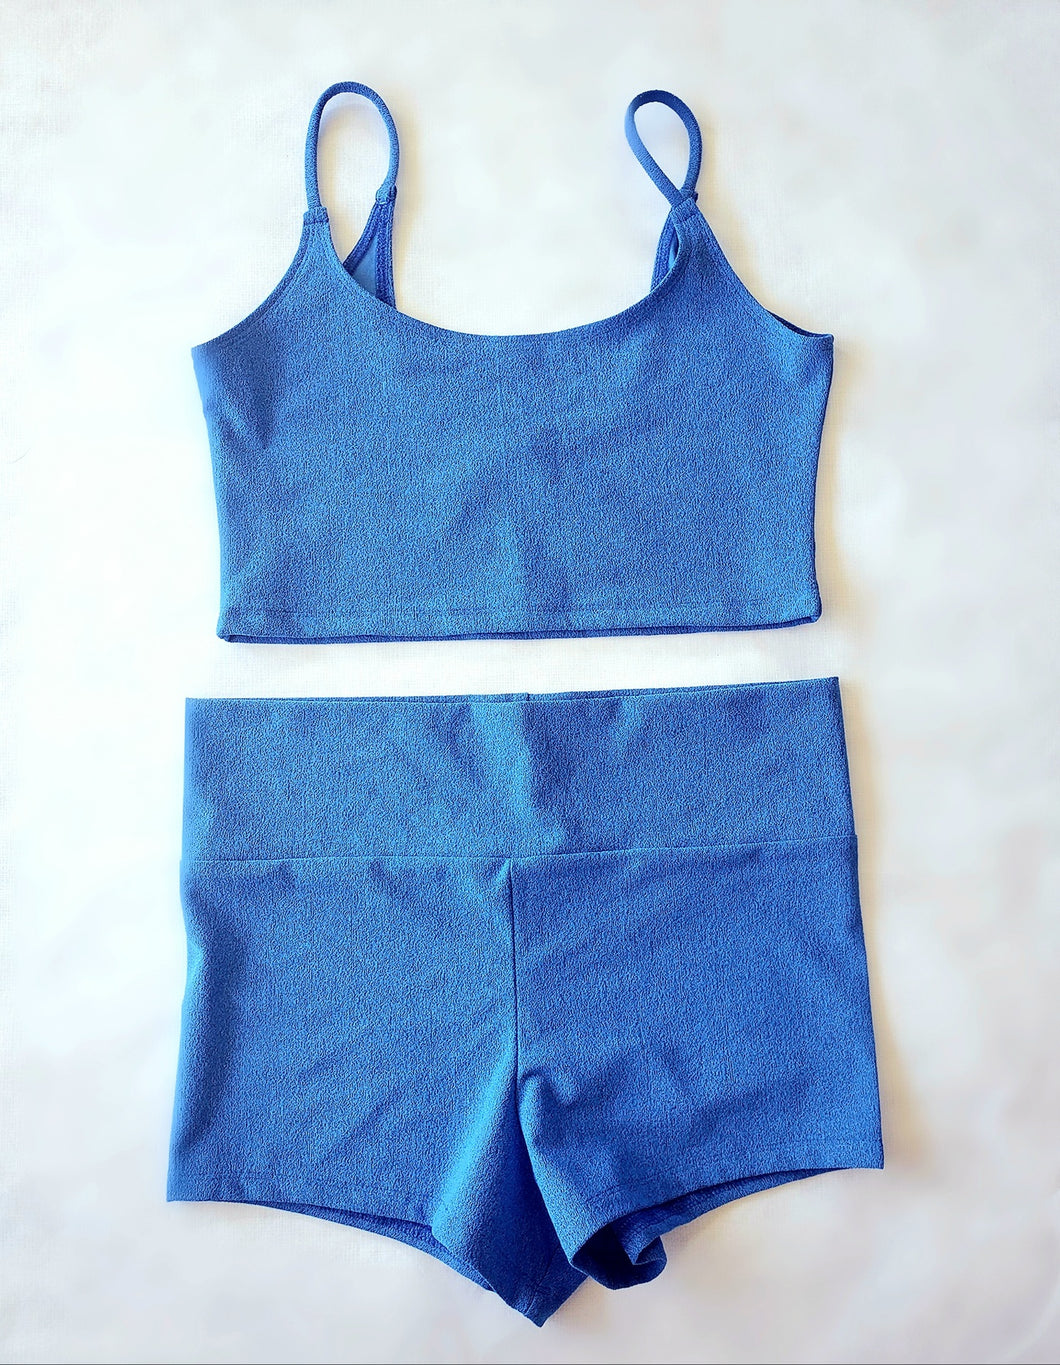 TEXTURED WORKOUT CROP CAMI- 3 COLORS AVAILABLE